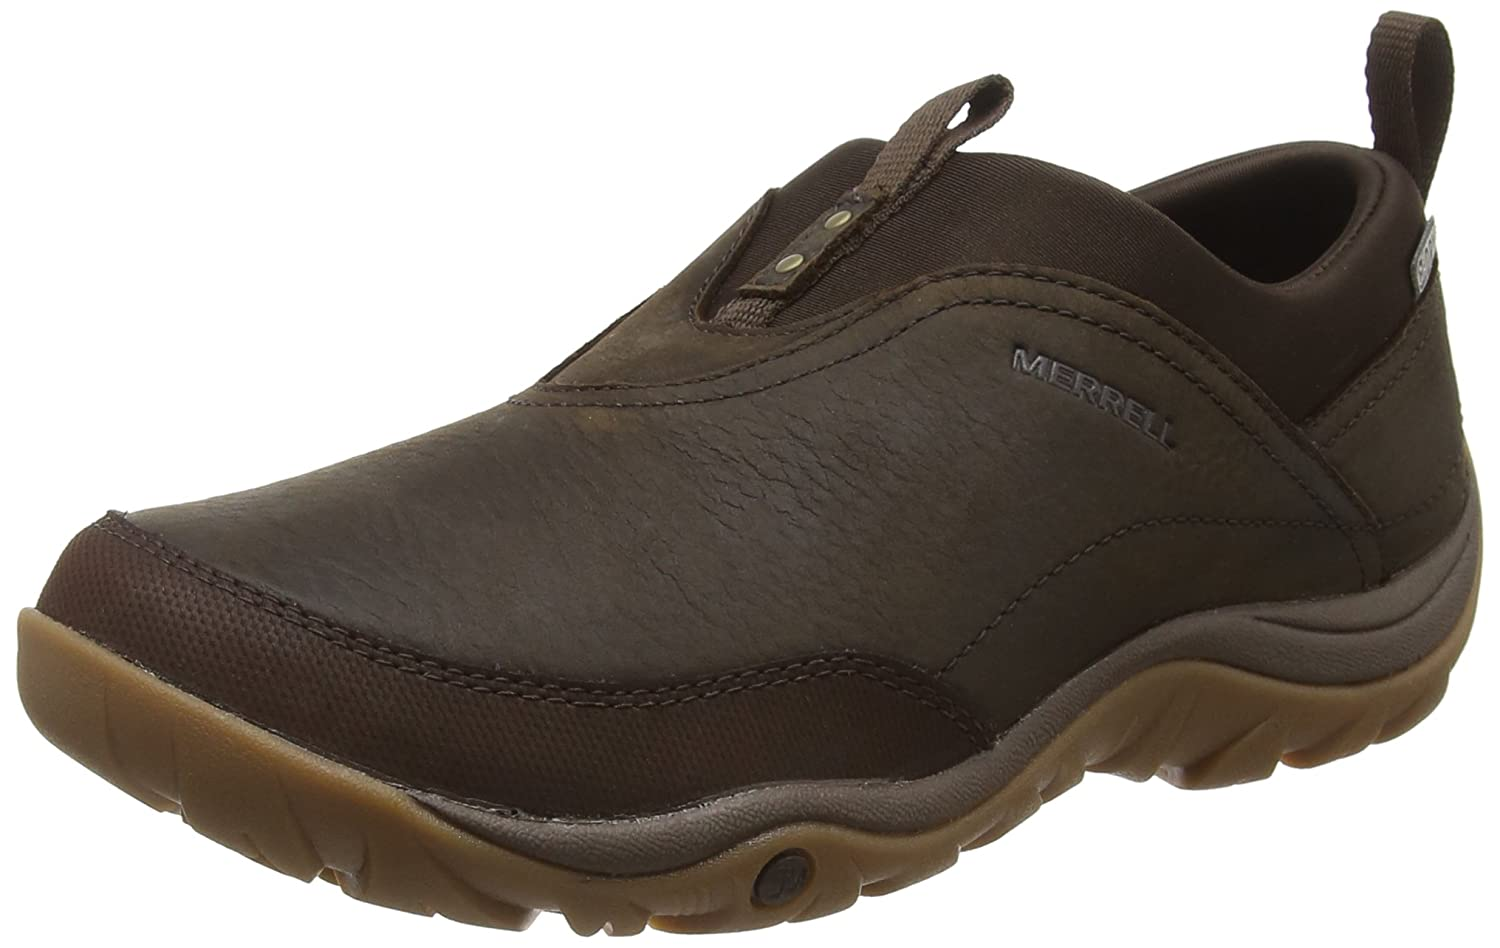 Merrell Women's Murren Moc Waterproof Shoe B019587OD8 8.5 B(M) US|Bracken